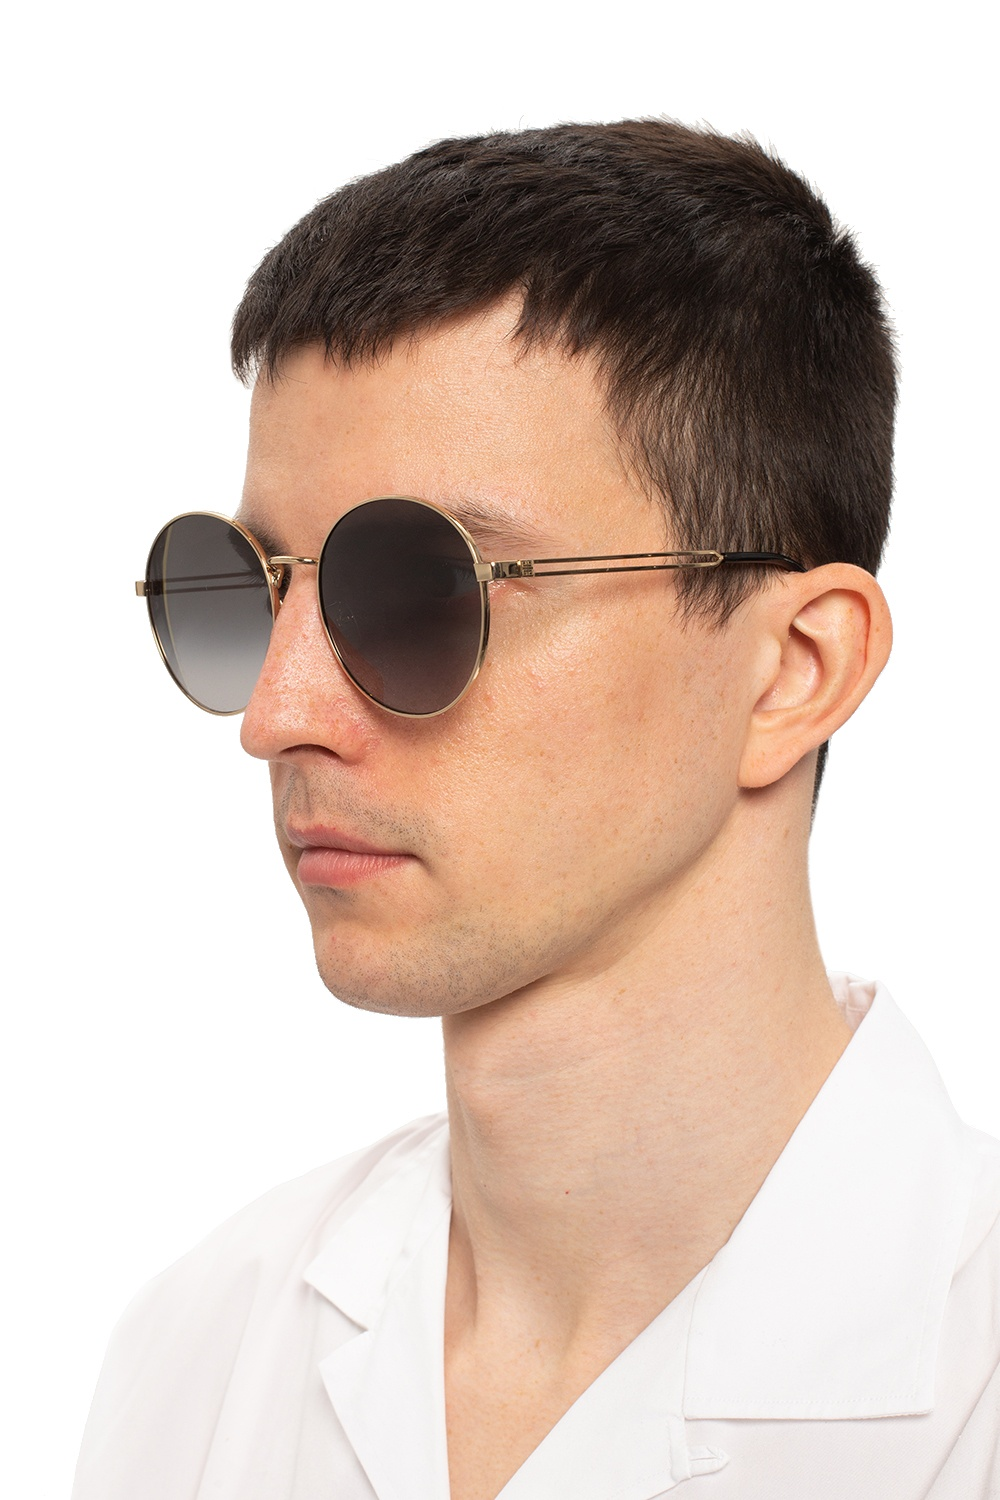 Givenchy Sunglasses with logo